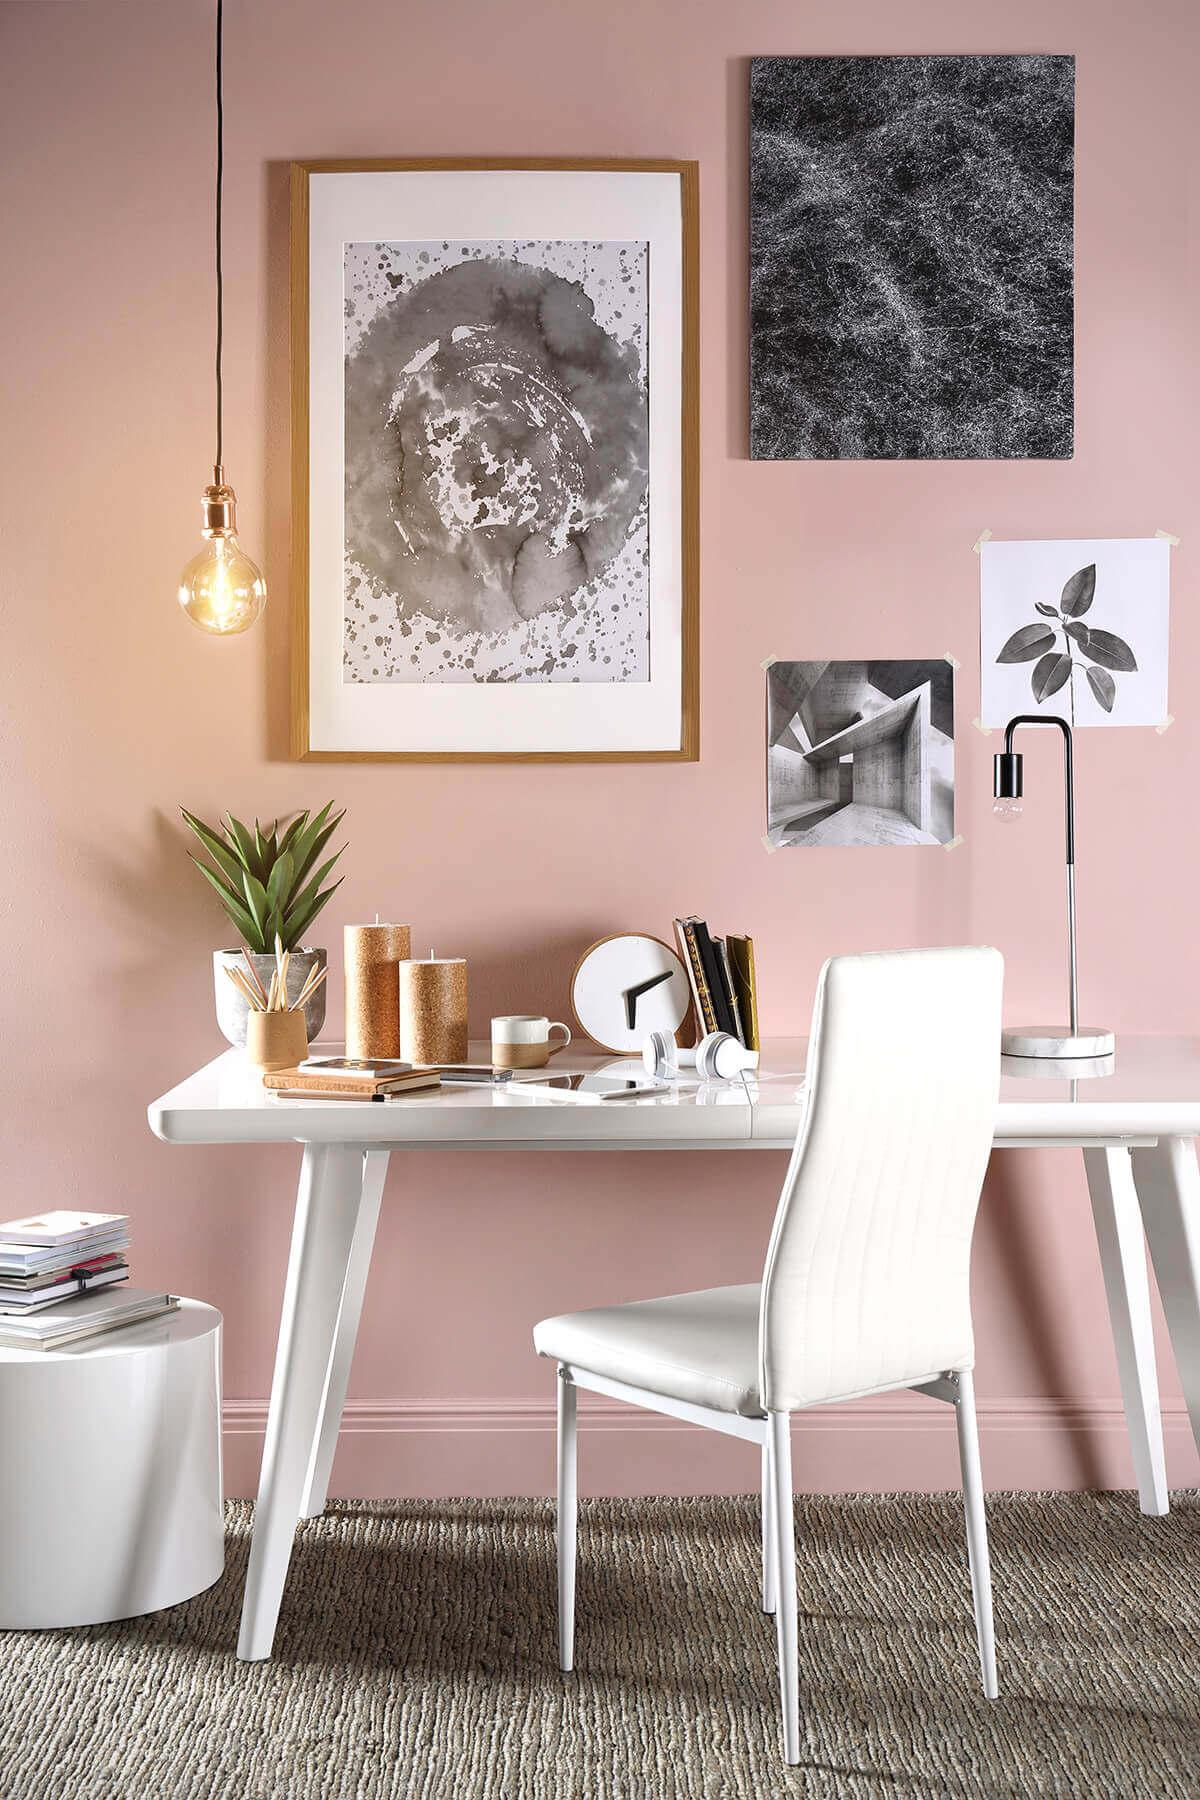 Vila White High Gloss Extending Dining Table - with 4 Leon White Chairs (White Legs)